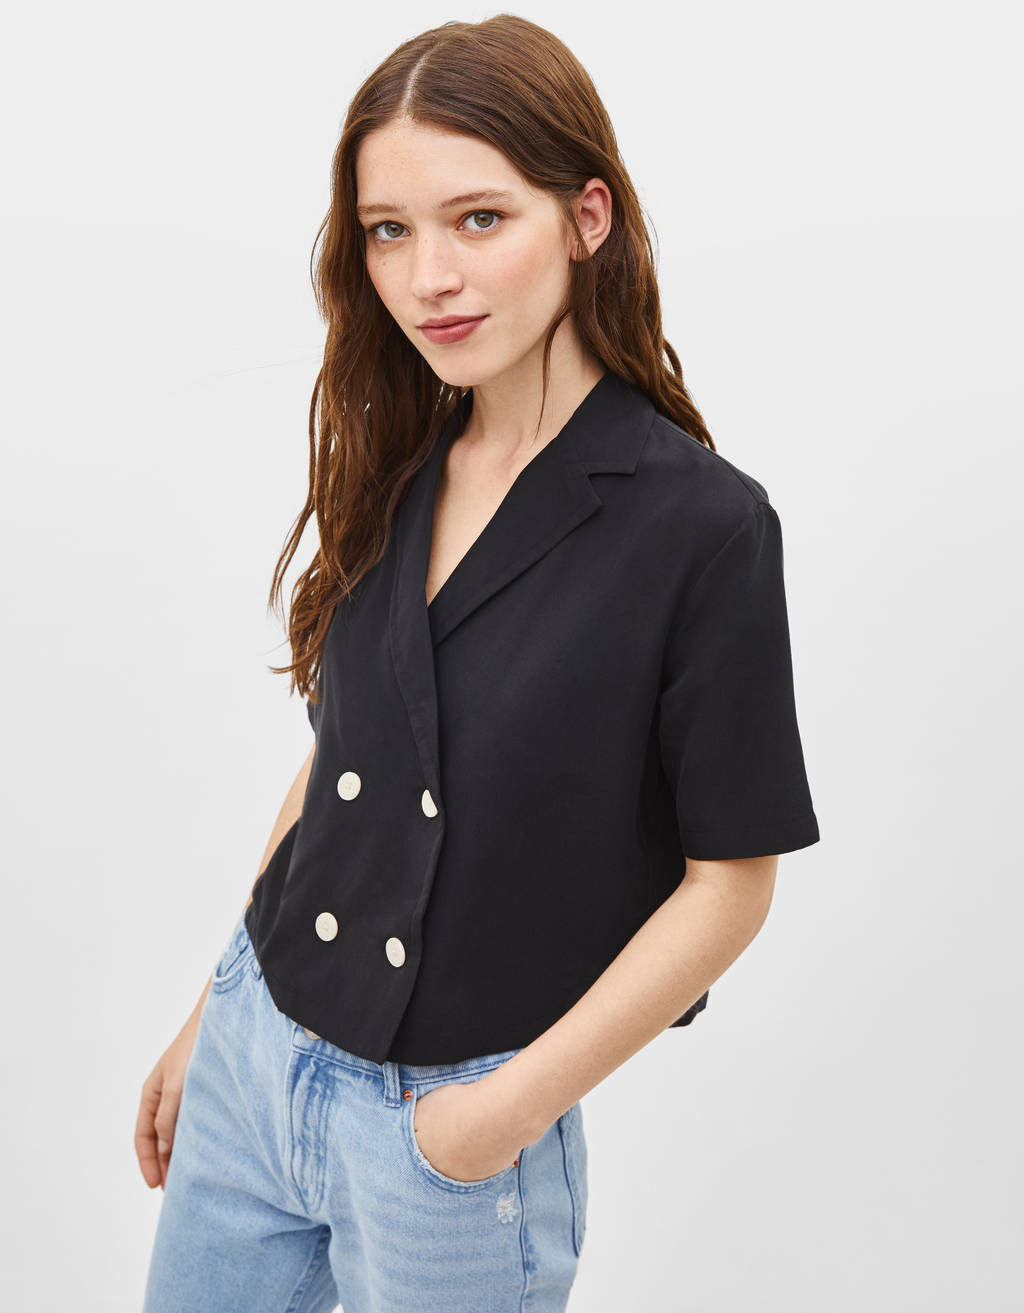 Short sleeve blazer shirt